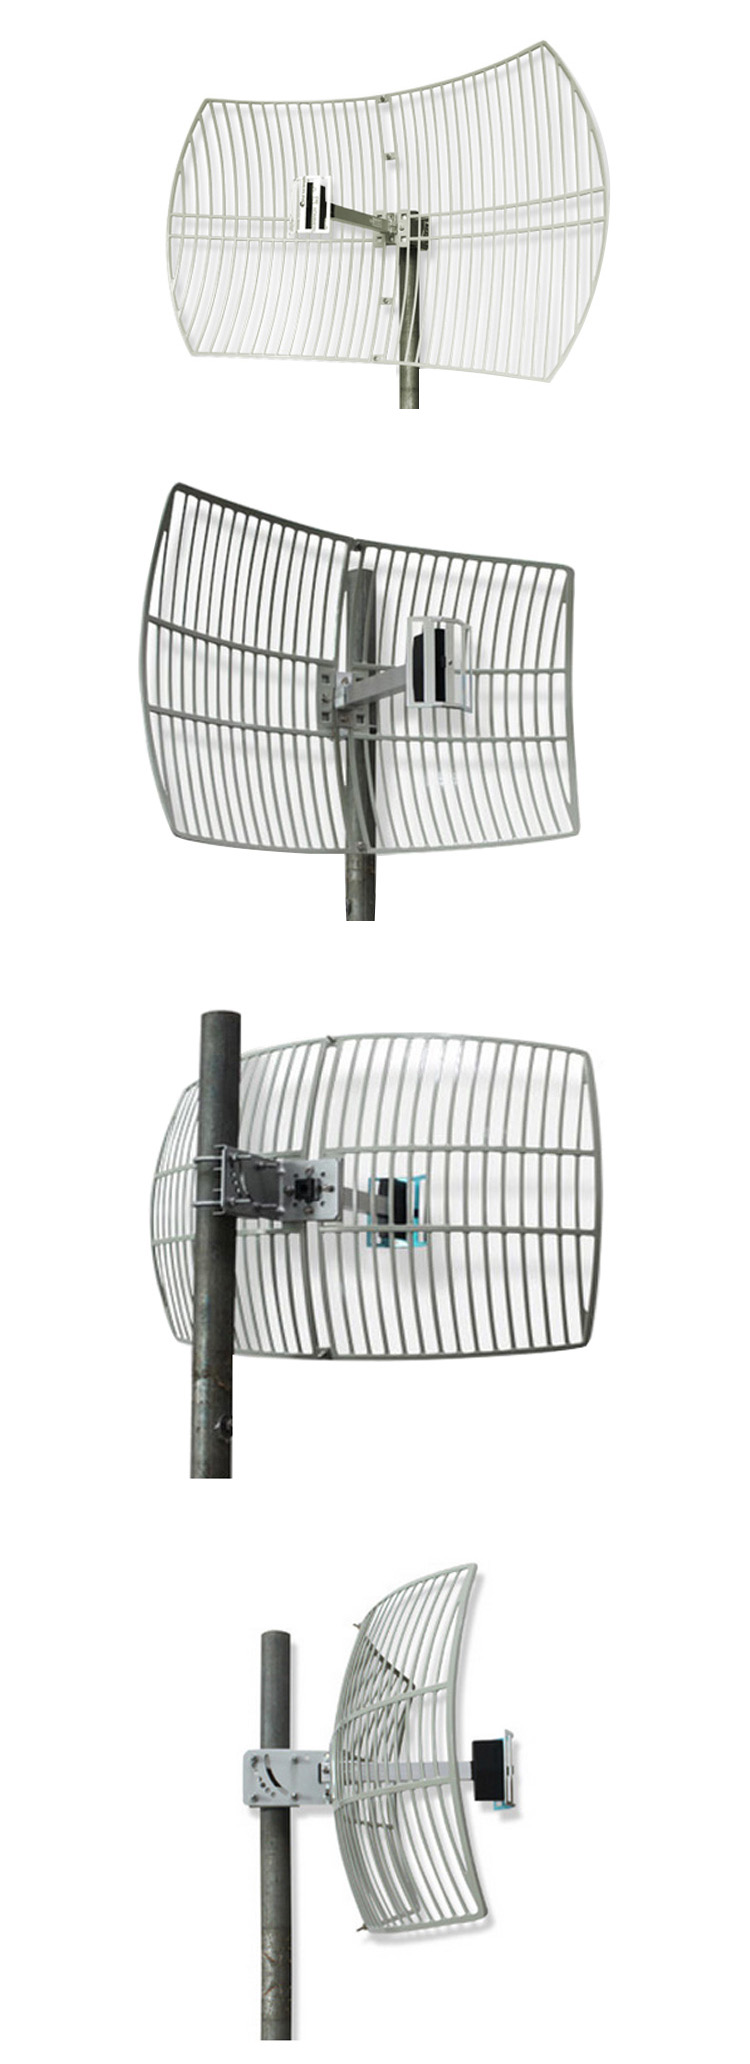 China Supplier Wifi Long Range 24dBi Directional Parabolic Dish Antennas with SMA Connector